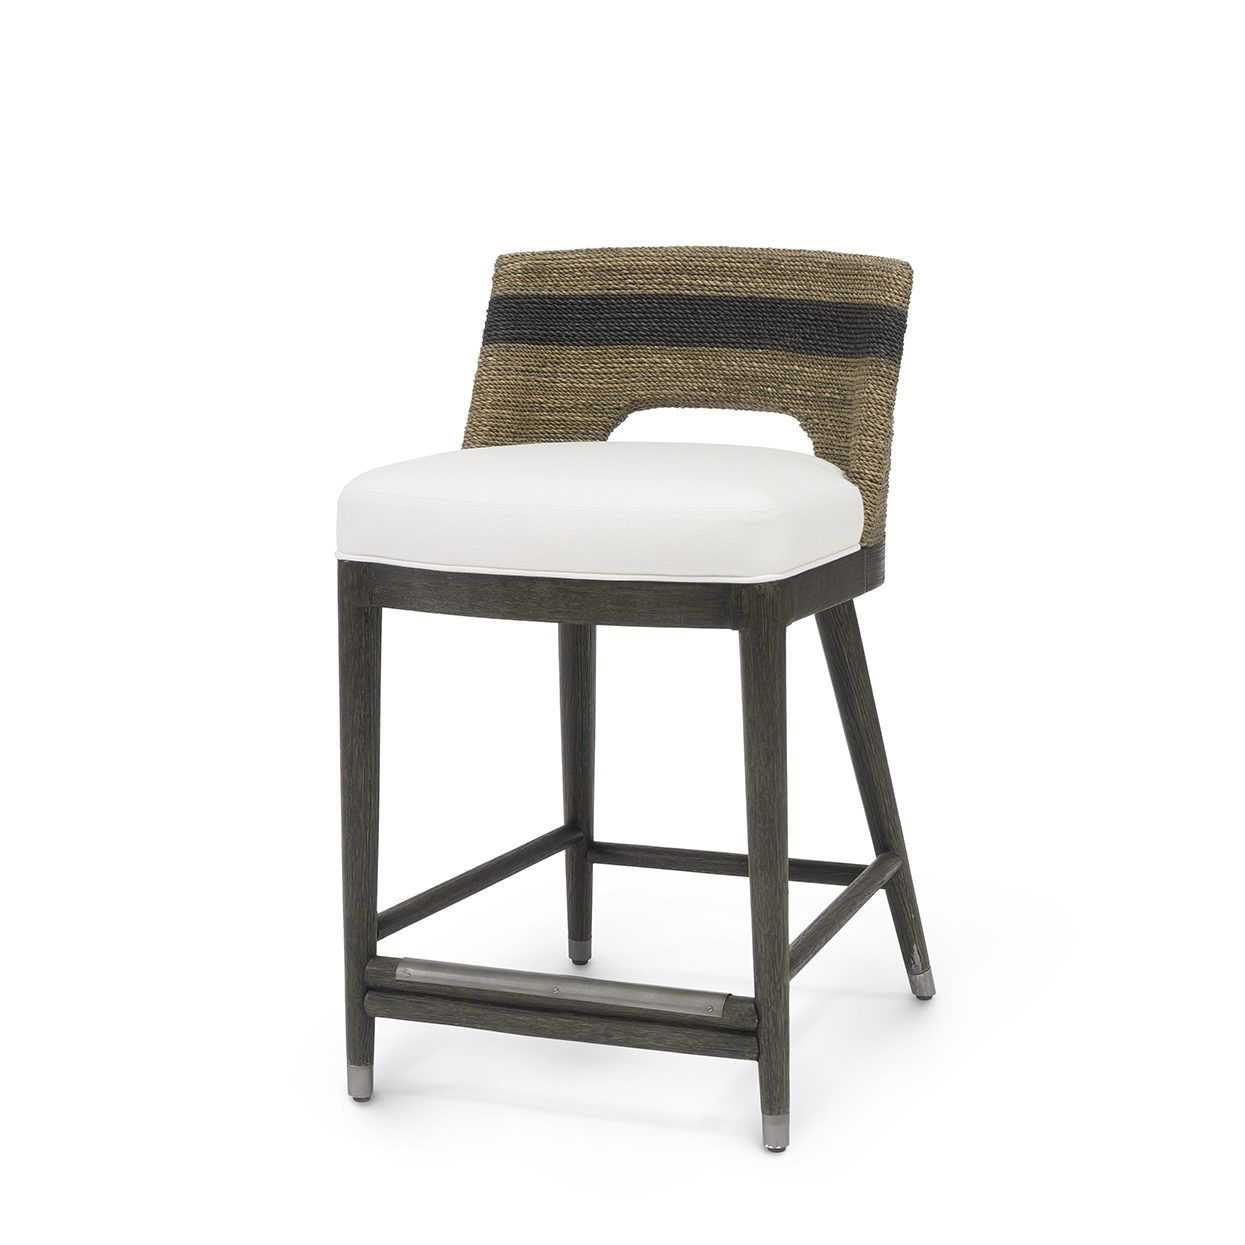 Incredible Palecek Com Products 773879 N 01 Fritz Rope 24 Counter Ibusinesslaw Wood Chair Design Ideas Ibusinesslaworg